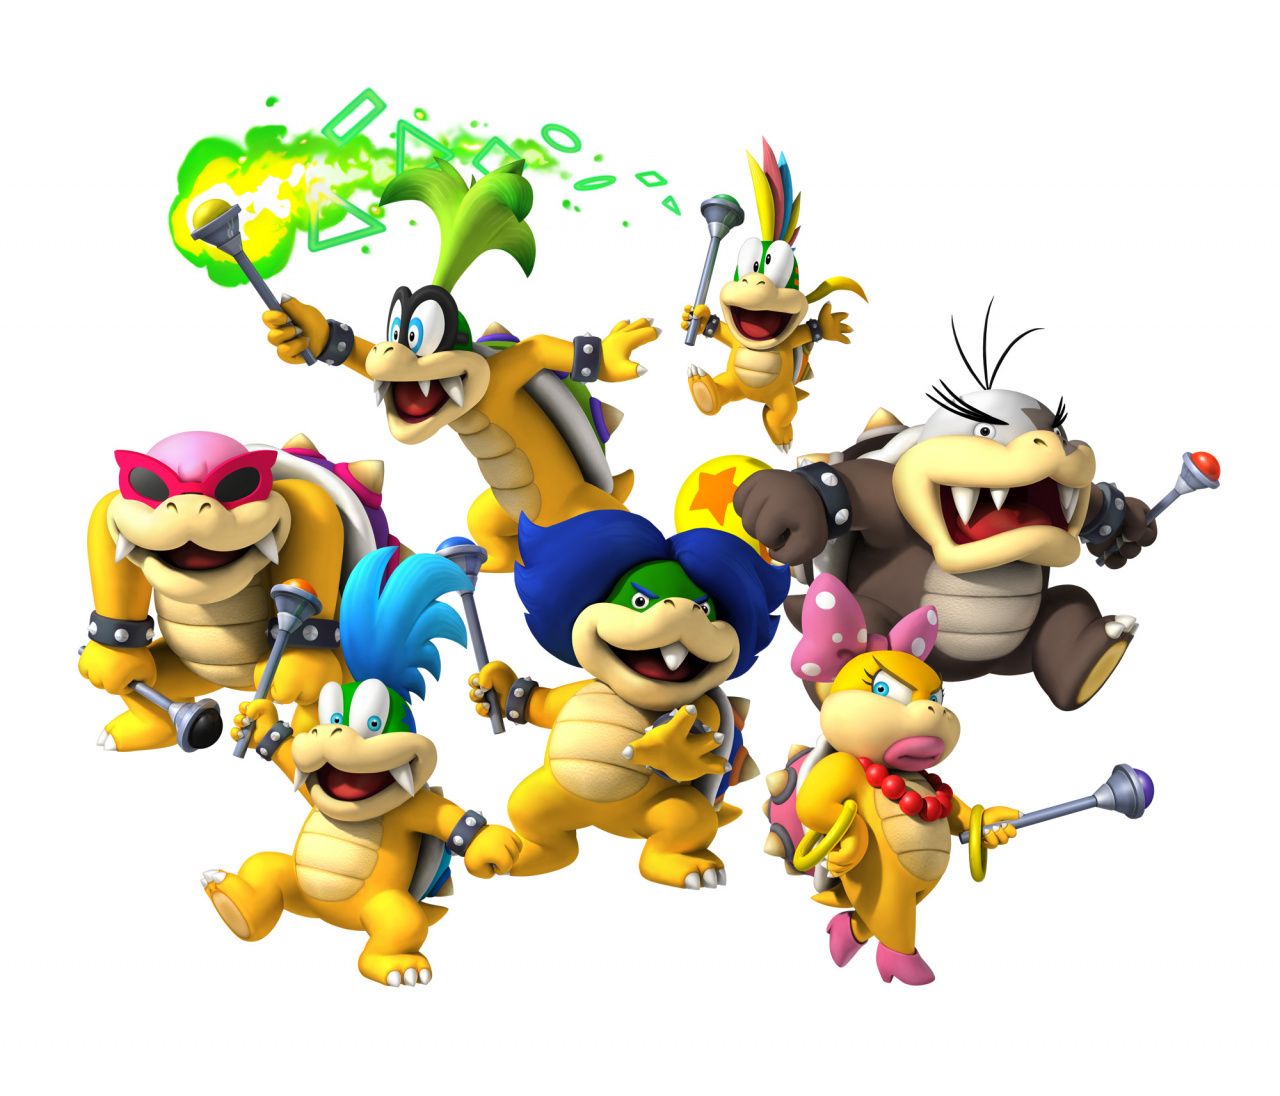 Random Heres Where All The Koopalings Got Their Names